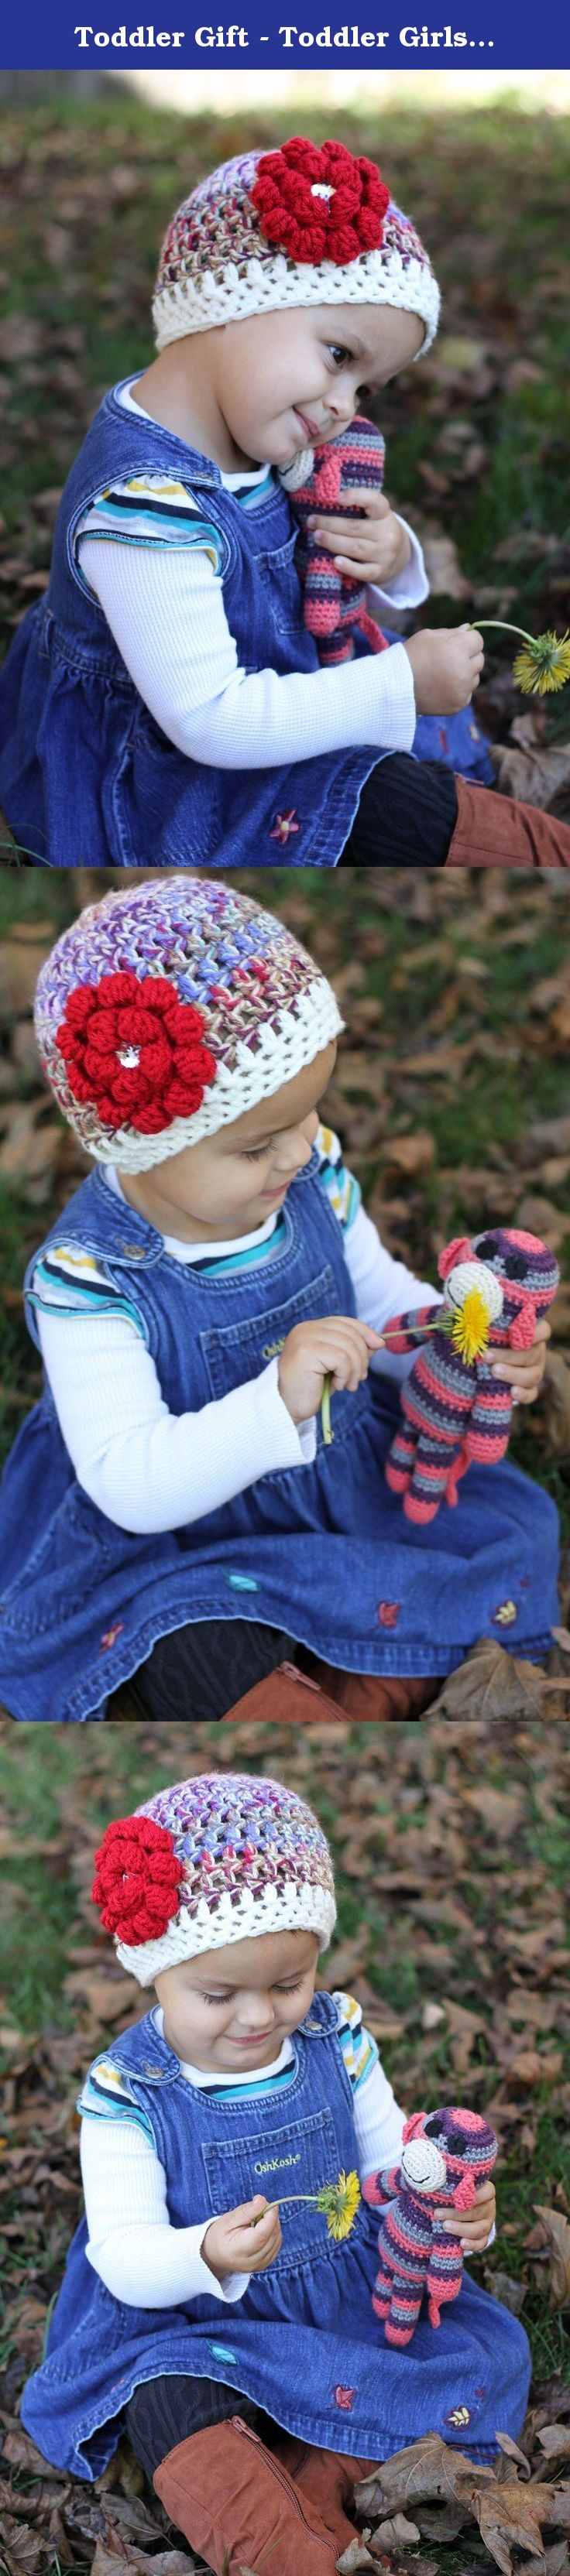 Toddler Gift - Toddler Girls Hat - Crochet Hat - Toddler Girls Winter Hat - Crocheted Winter Hat - Crochet Hat with Flower. I created this super cute toddler girl hat so that YOU can give the most unique handmade gift this year! This unique toddler gift was hand crocheted by me with you, my fellow hat lover, in mind. All Crochet Collection hats are made with cute color combinations and the most awesome buttons I can find! If I wouldn't wear it, I wouldn't want you to!.